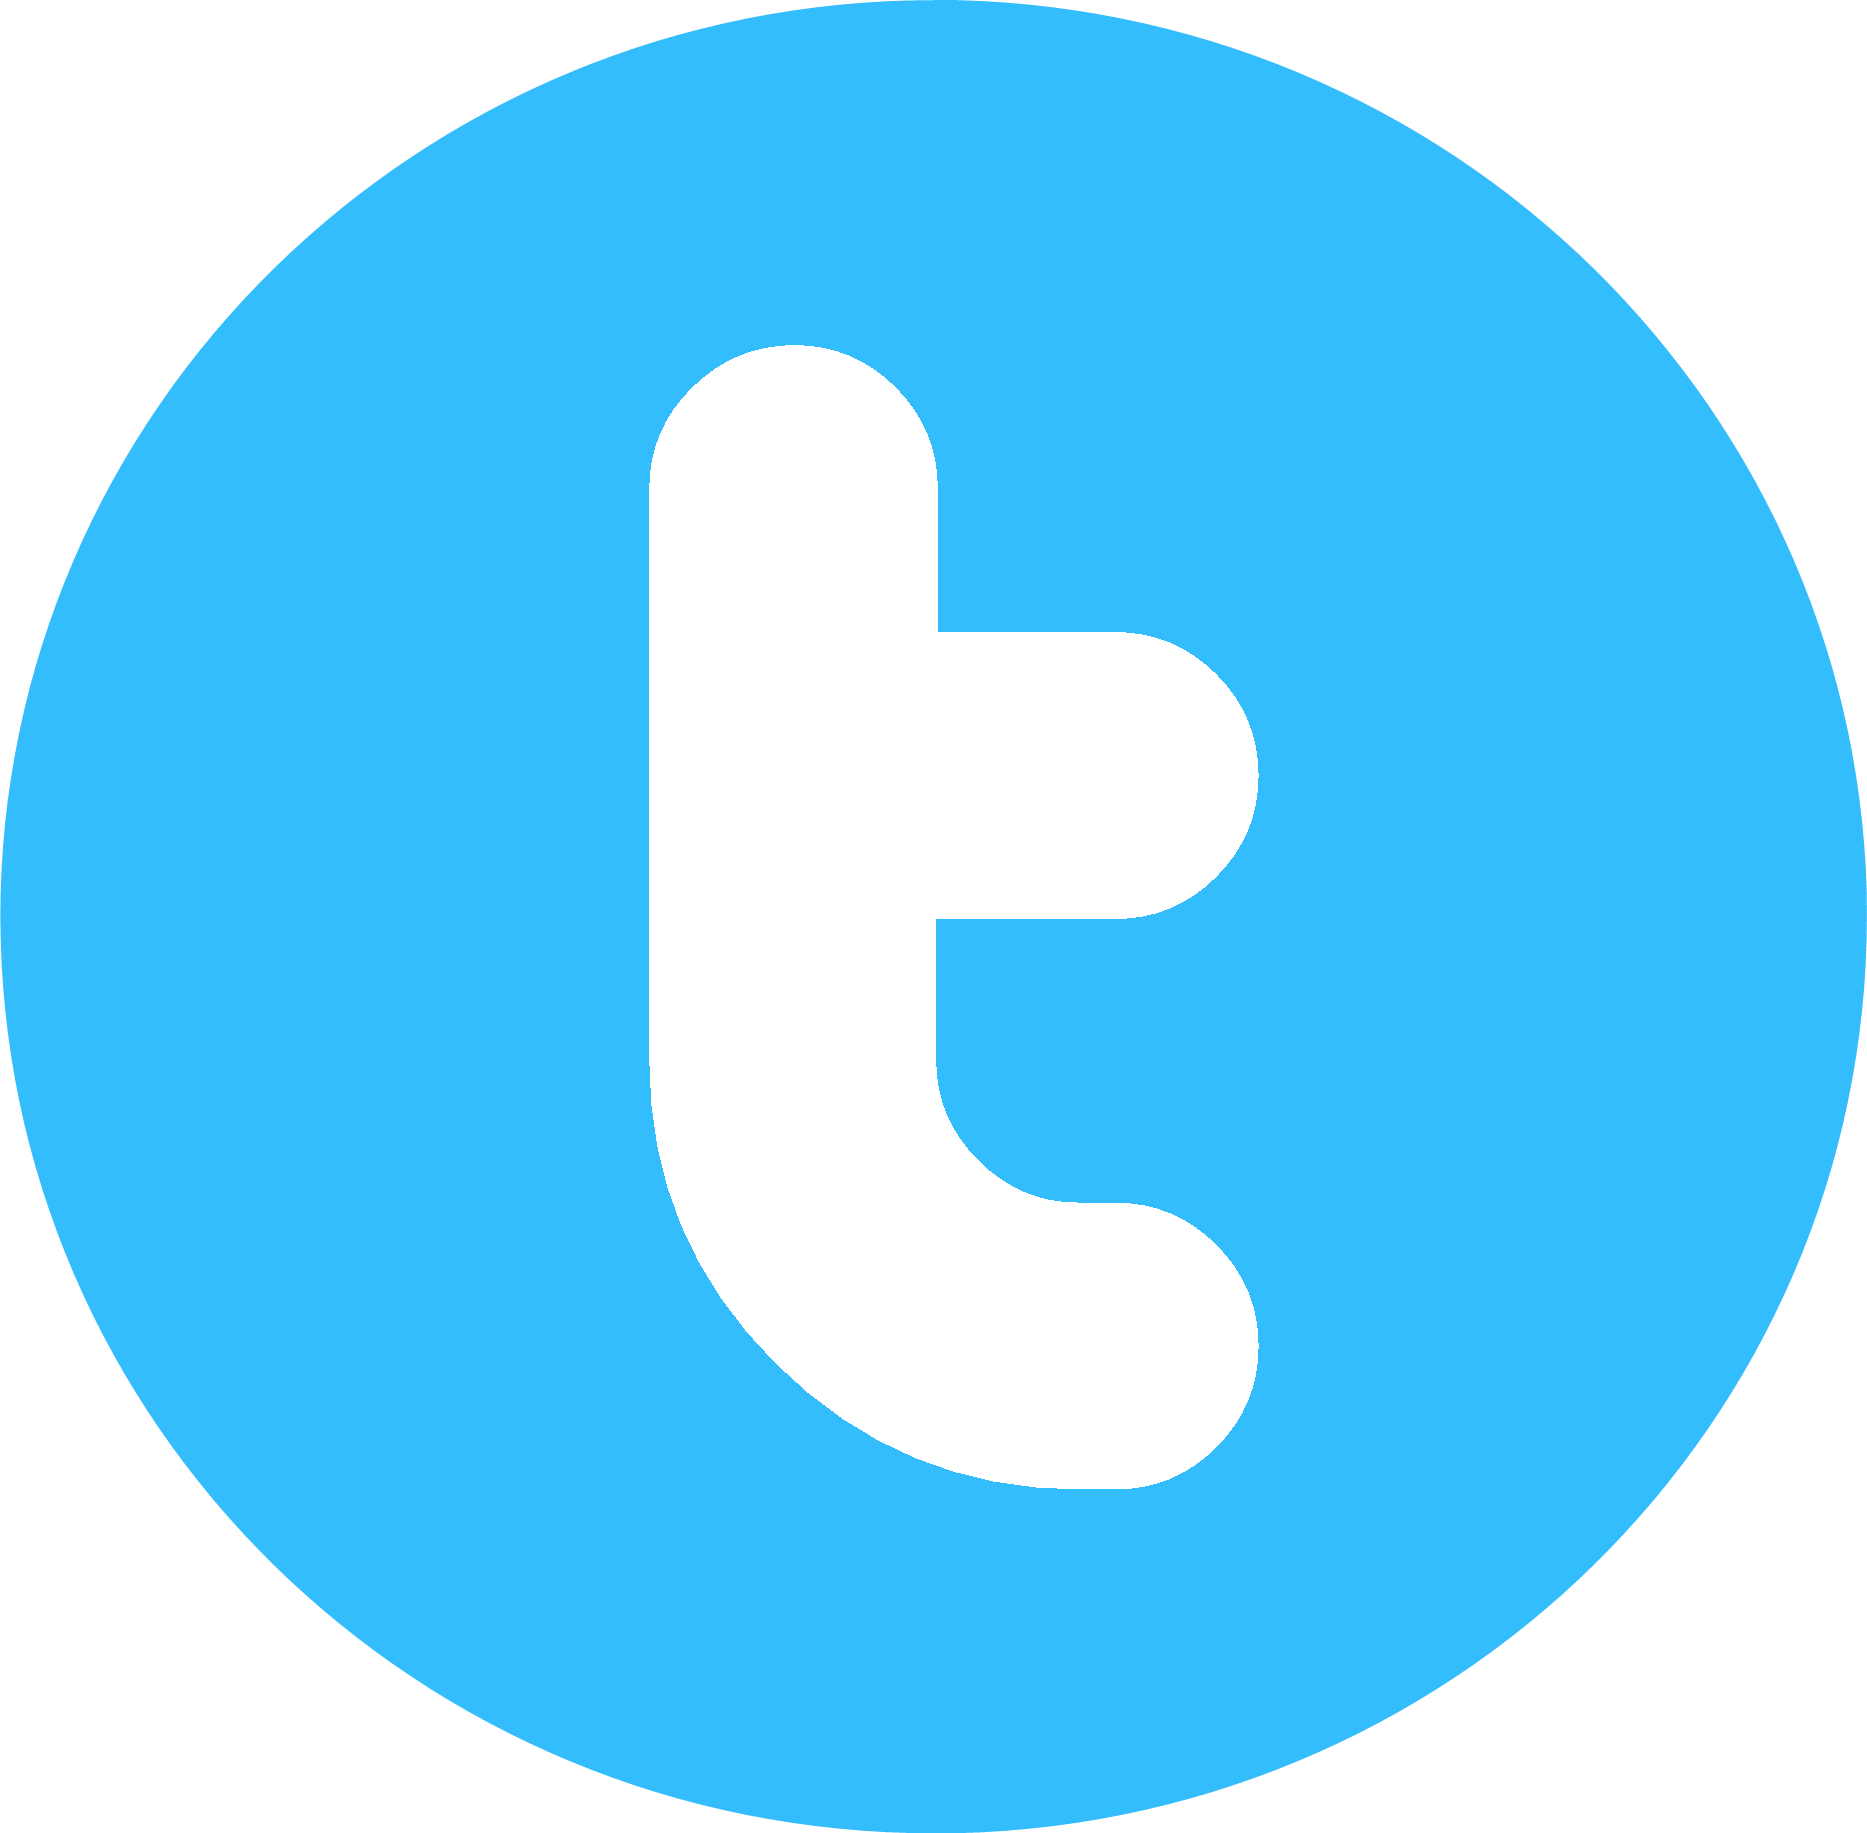 clipart twitter icon - photo #38